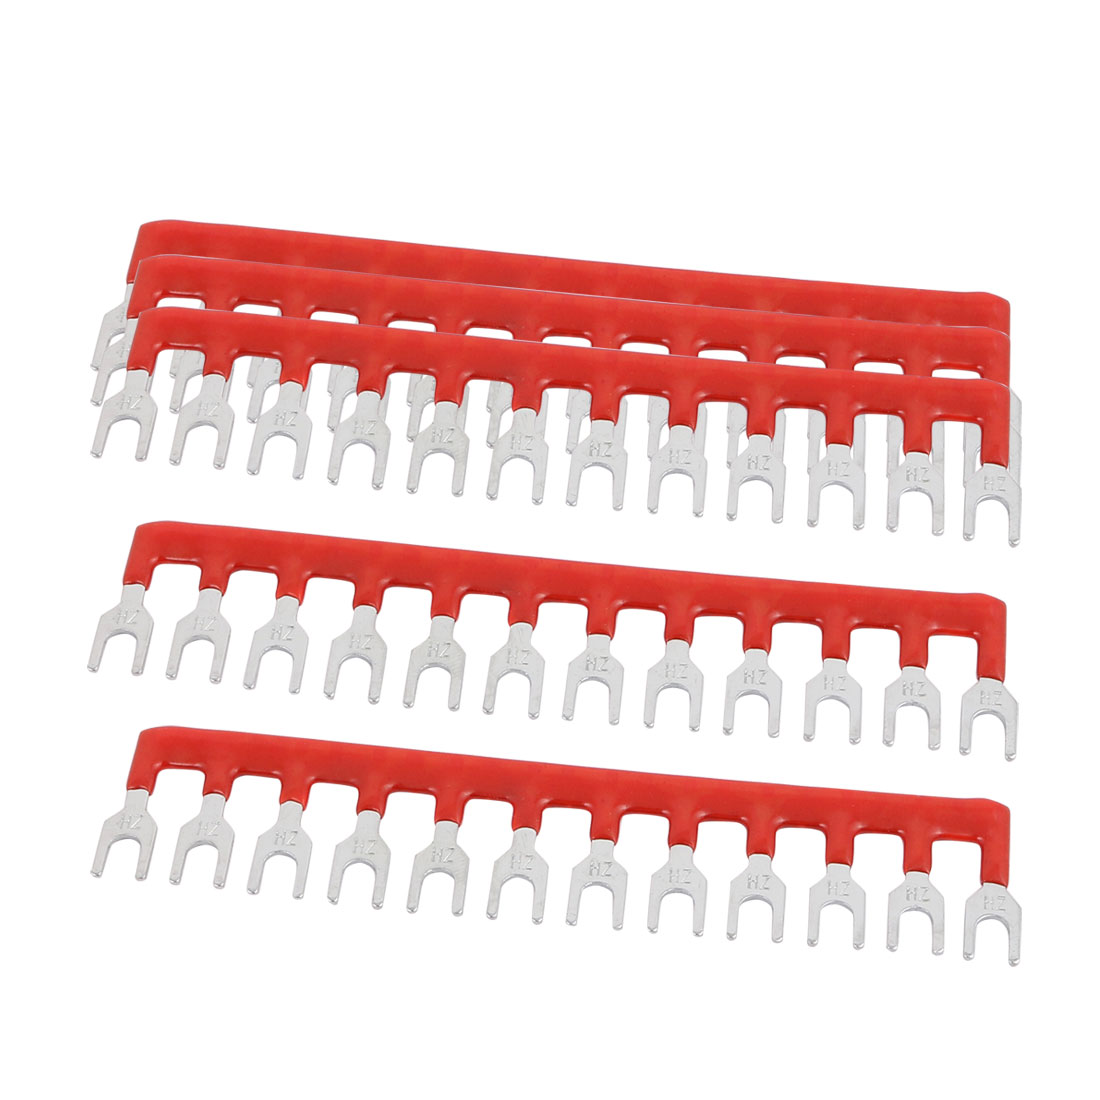 5PCS 600V 15A 5mm Pitch 12 Position PCB Terminal Block Strip Barrier Red